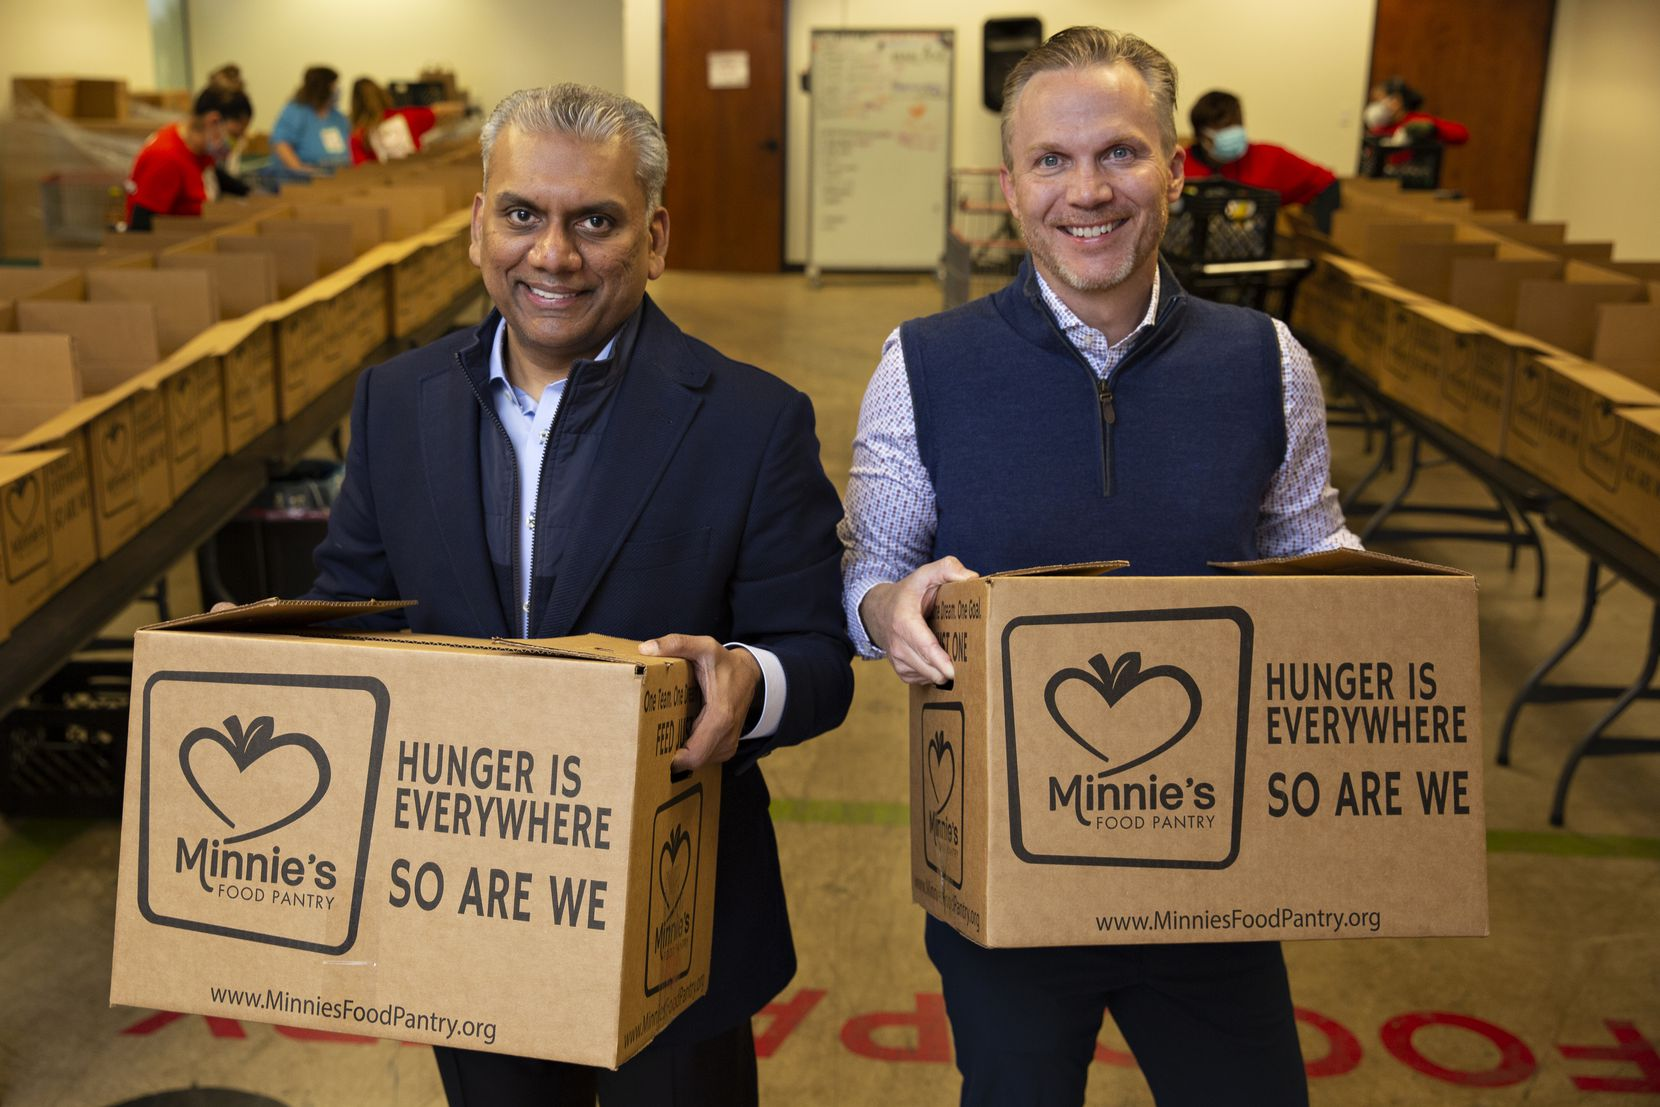 Anurag Jain (left) and Patrick Brandt are the co-founders of Get Shift Done, a nonprofit that was launched in March 2020 in response to the COVID-19 pandemic. Get Shift Done connects unemployed hospitality workers with paid positions at hunger relief organizations such as Minnie's Food Pantry in Plano.